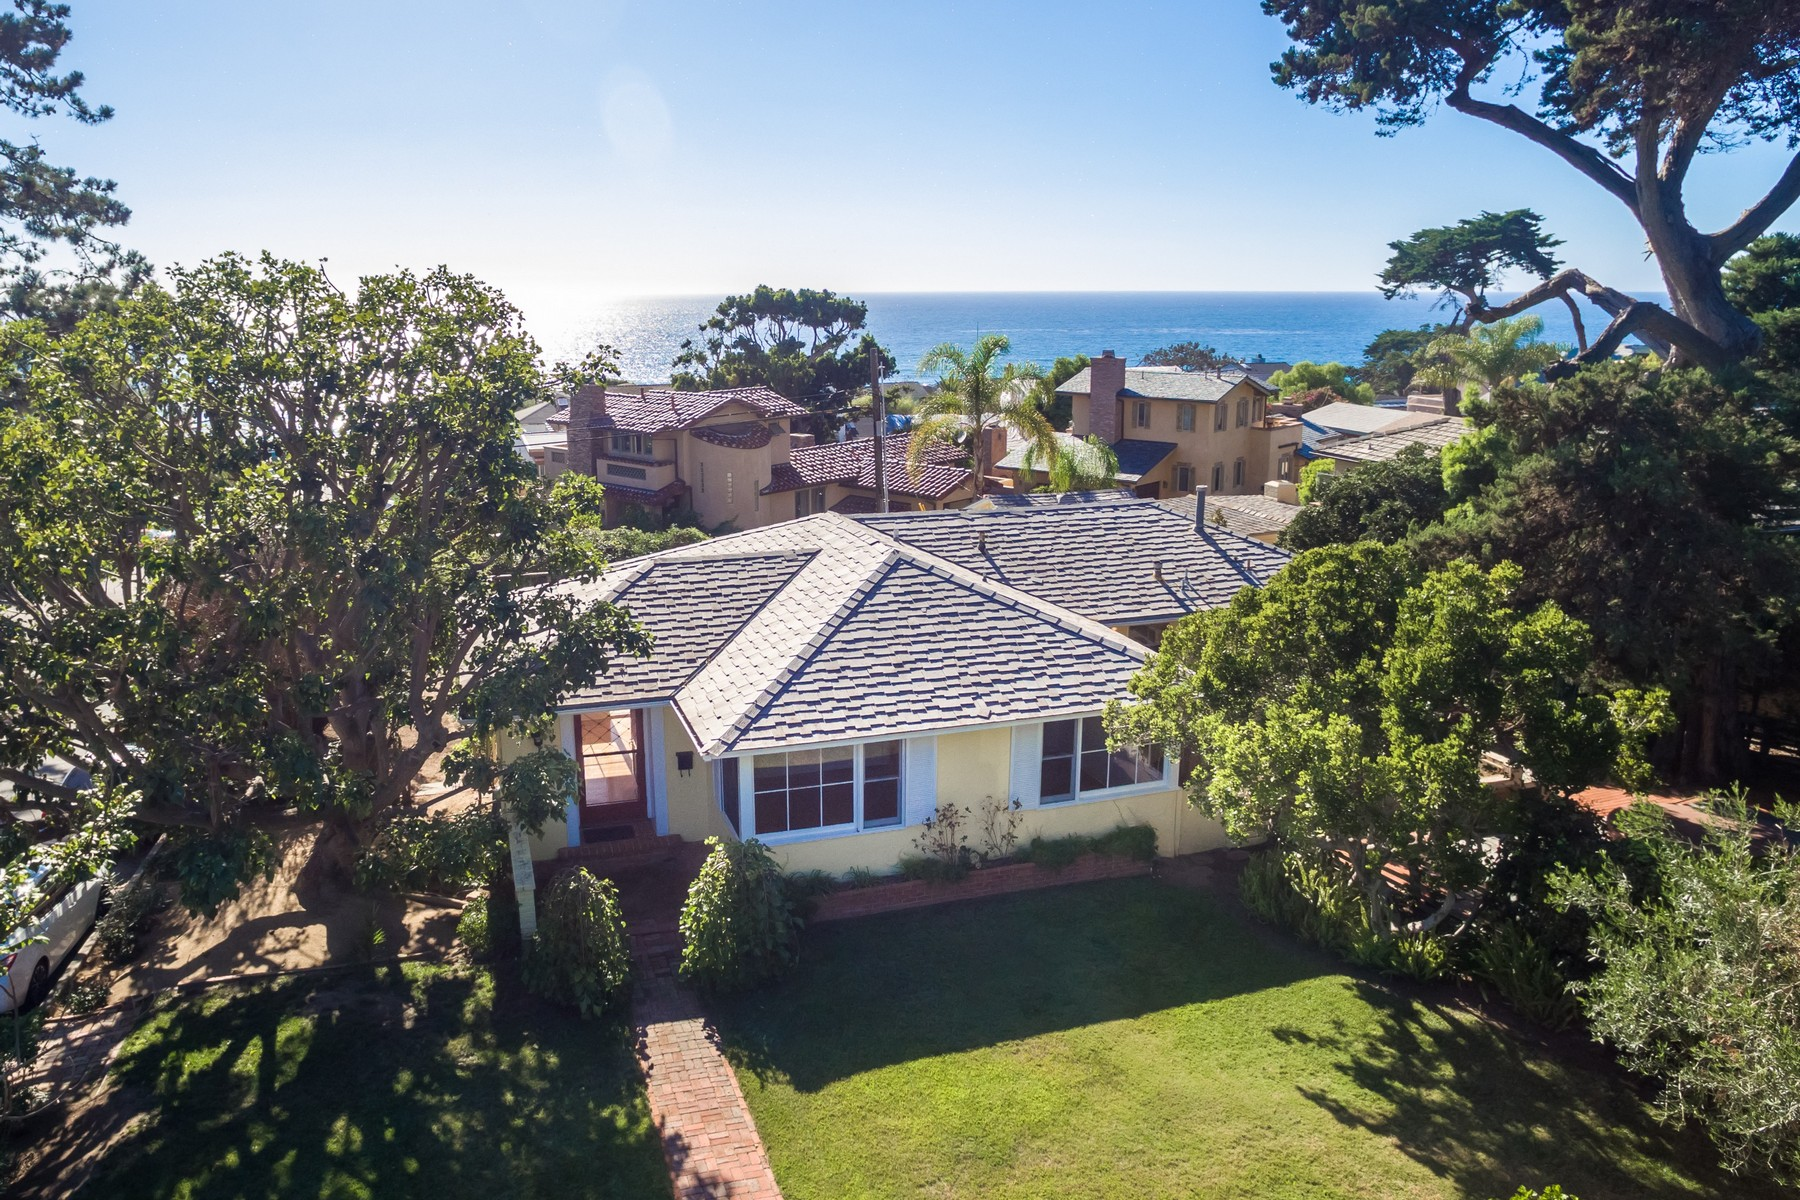 Single Family Home for Sale at 1206 Stratford Court Del Mar, California 92014 United States